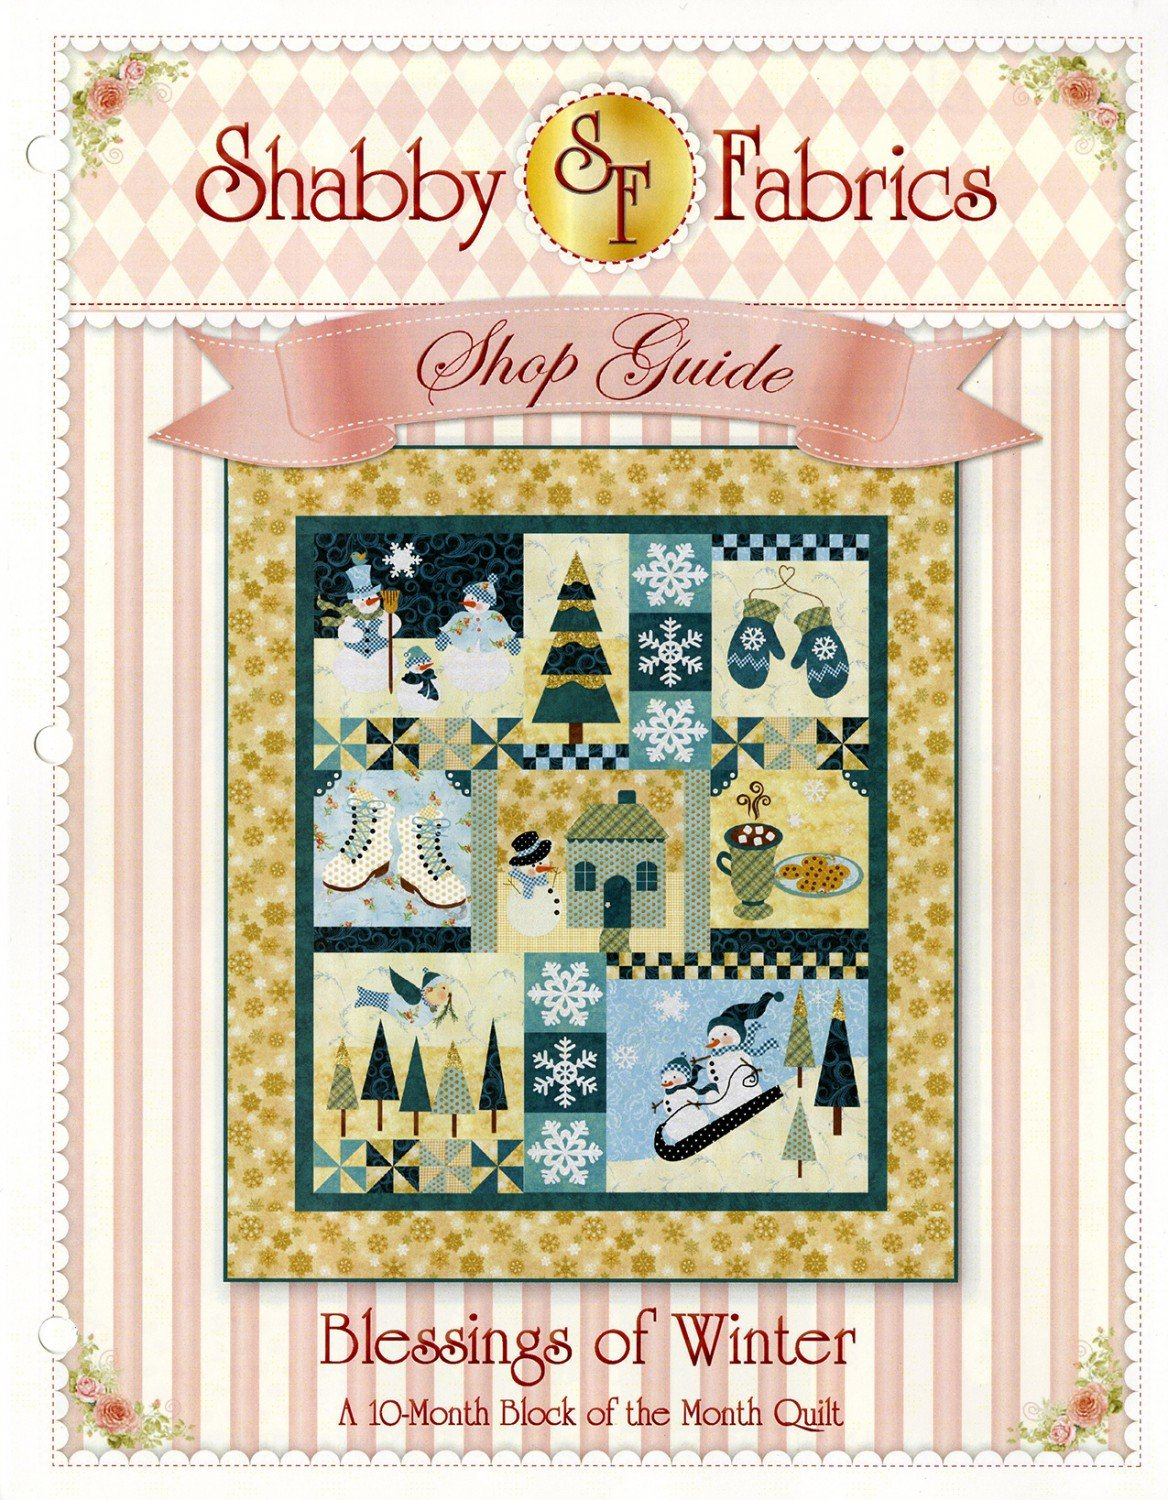 Blessing of Winter by Shabby Fabrics